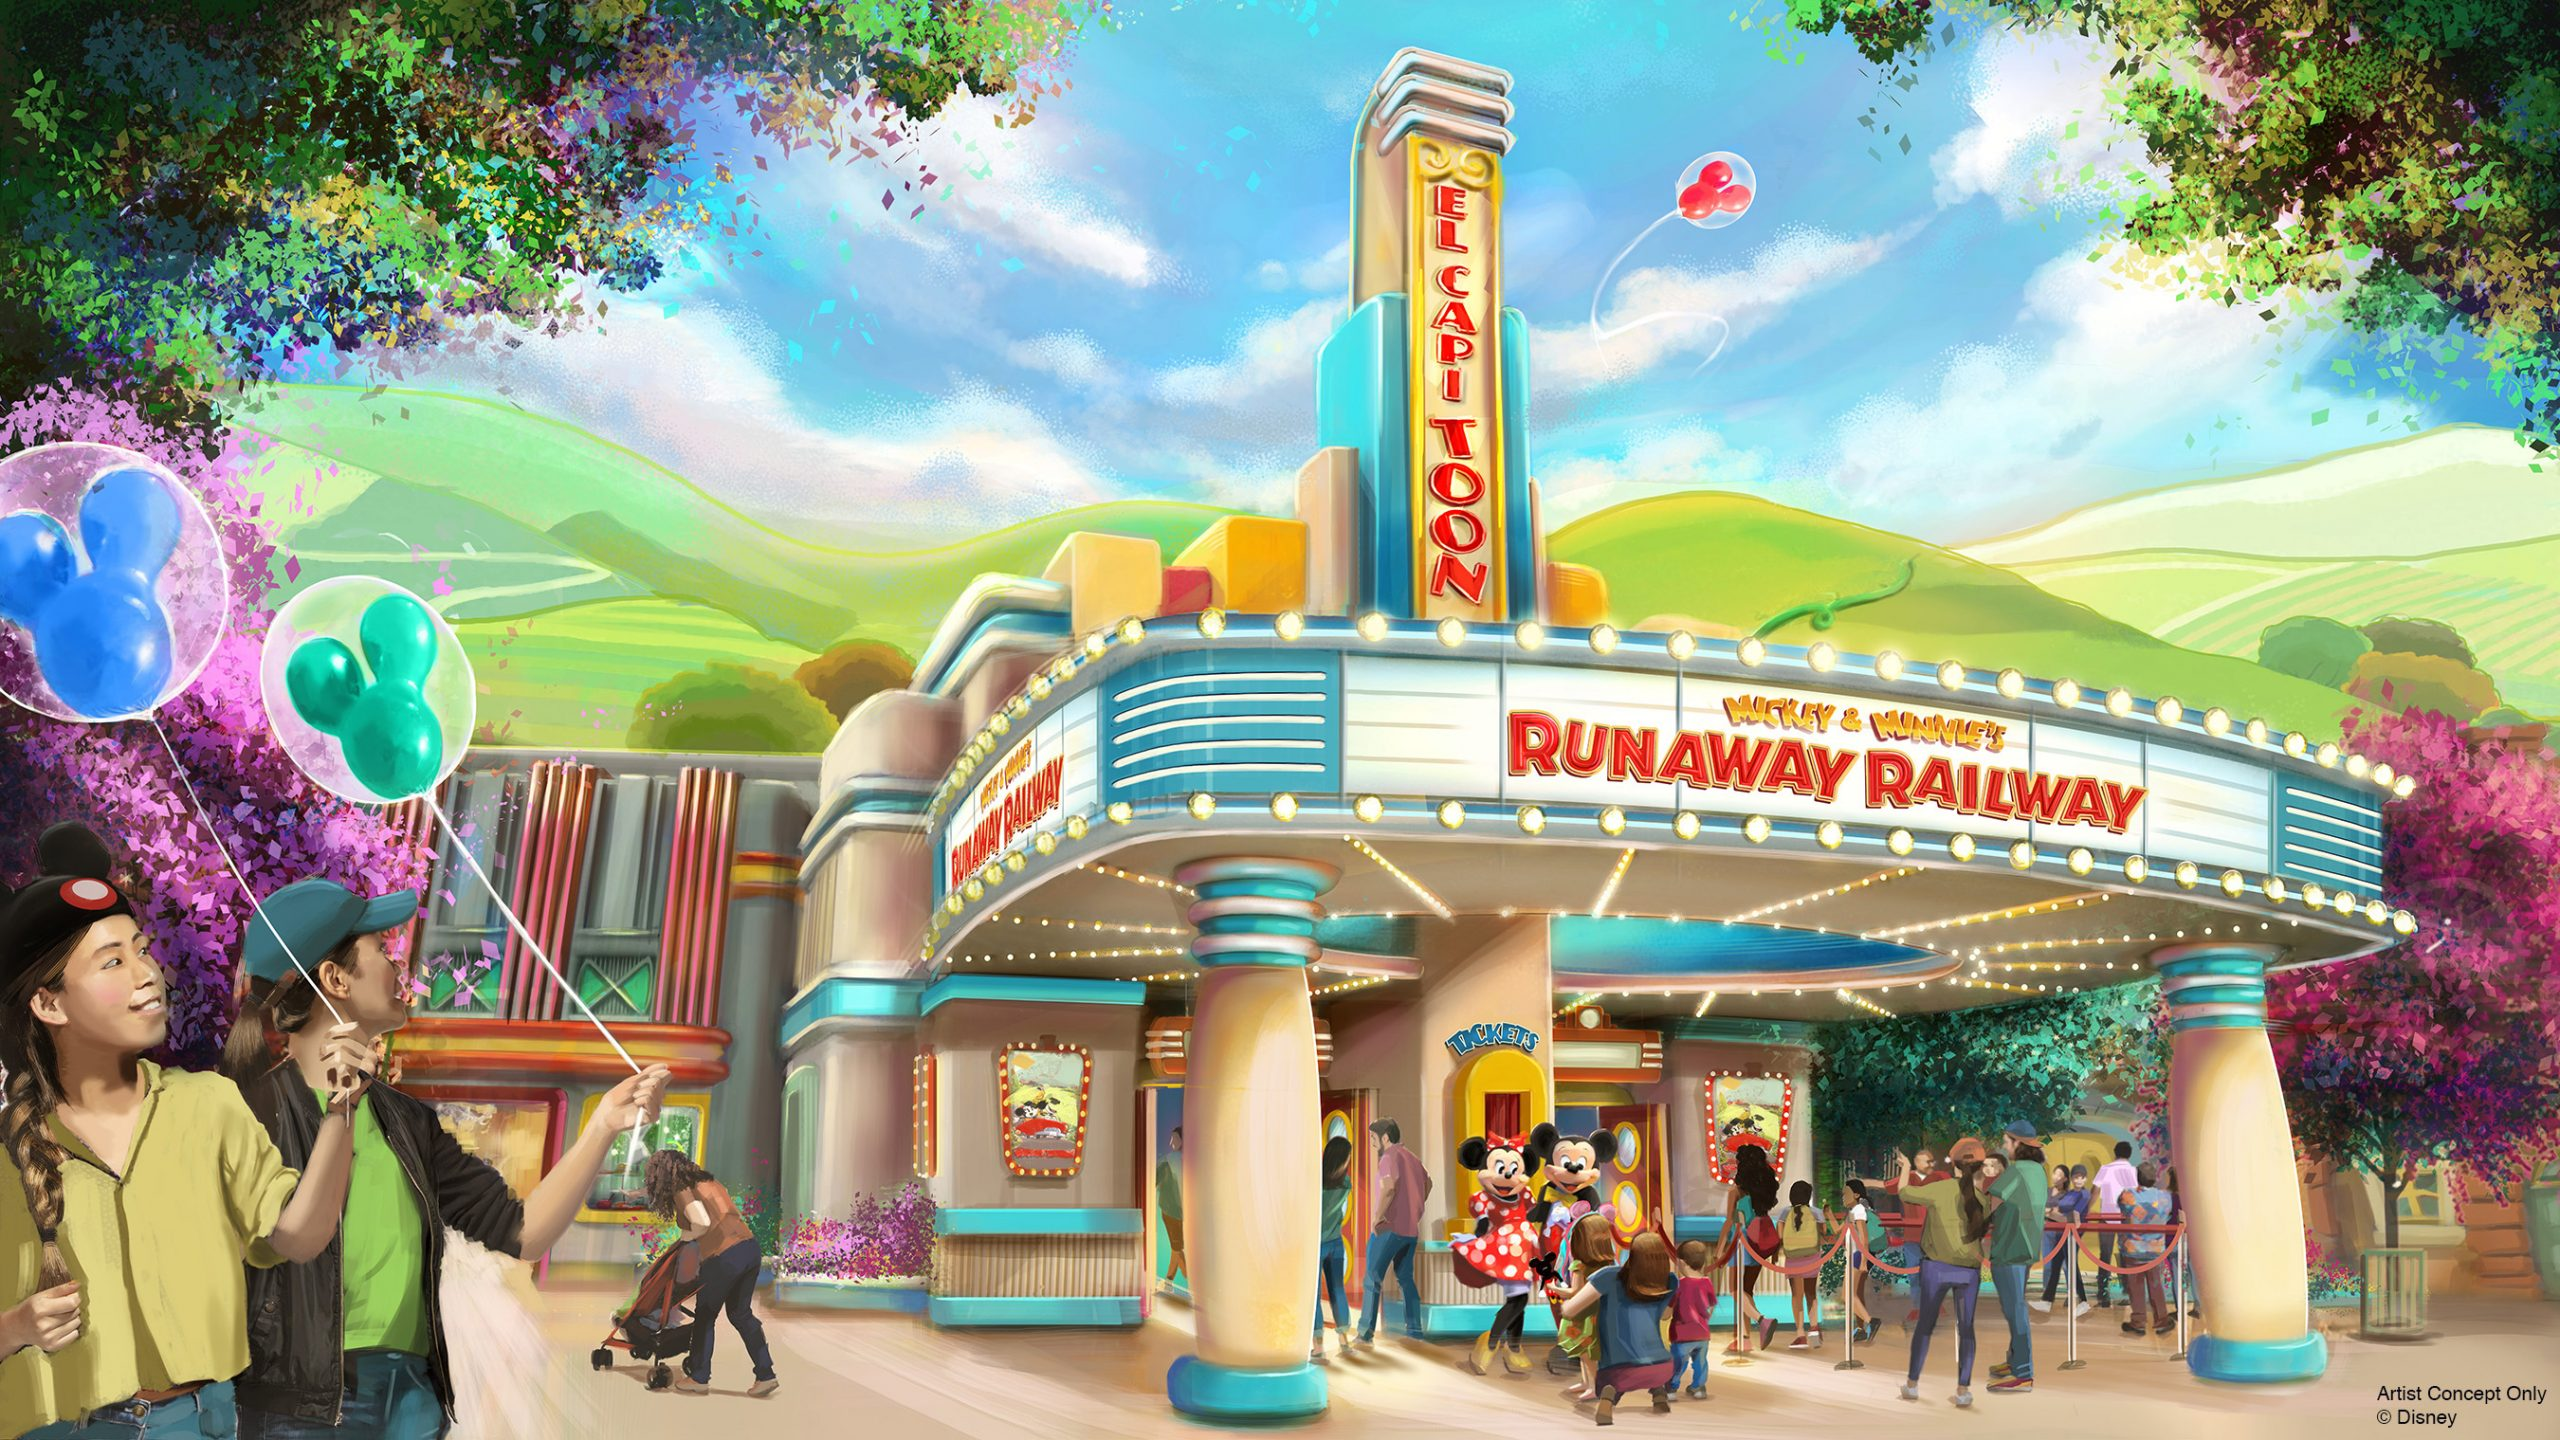 Looking for updates on Mickey and Minnie's Runaway Railway? These are the latest updates from the D23 expo!